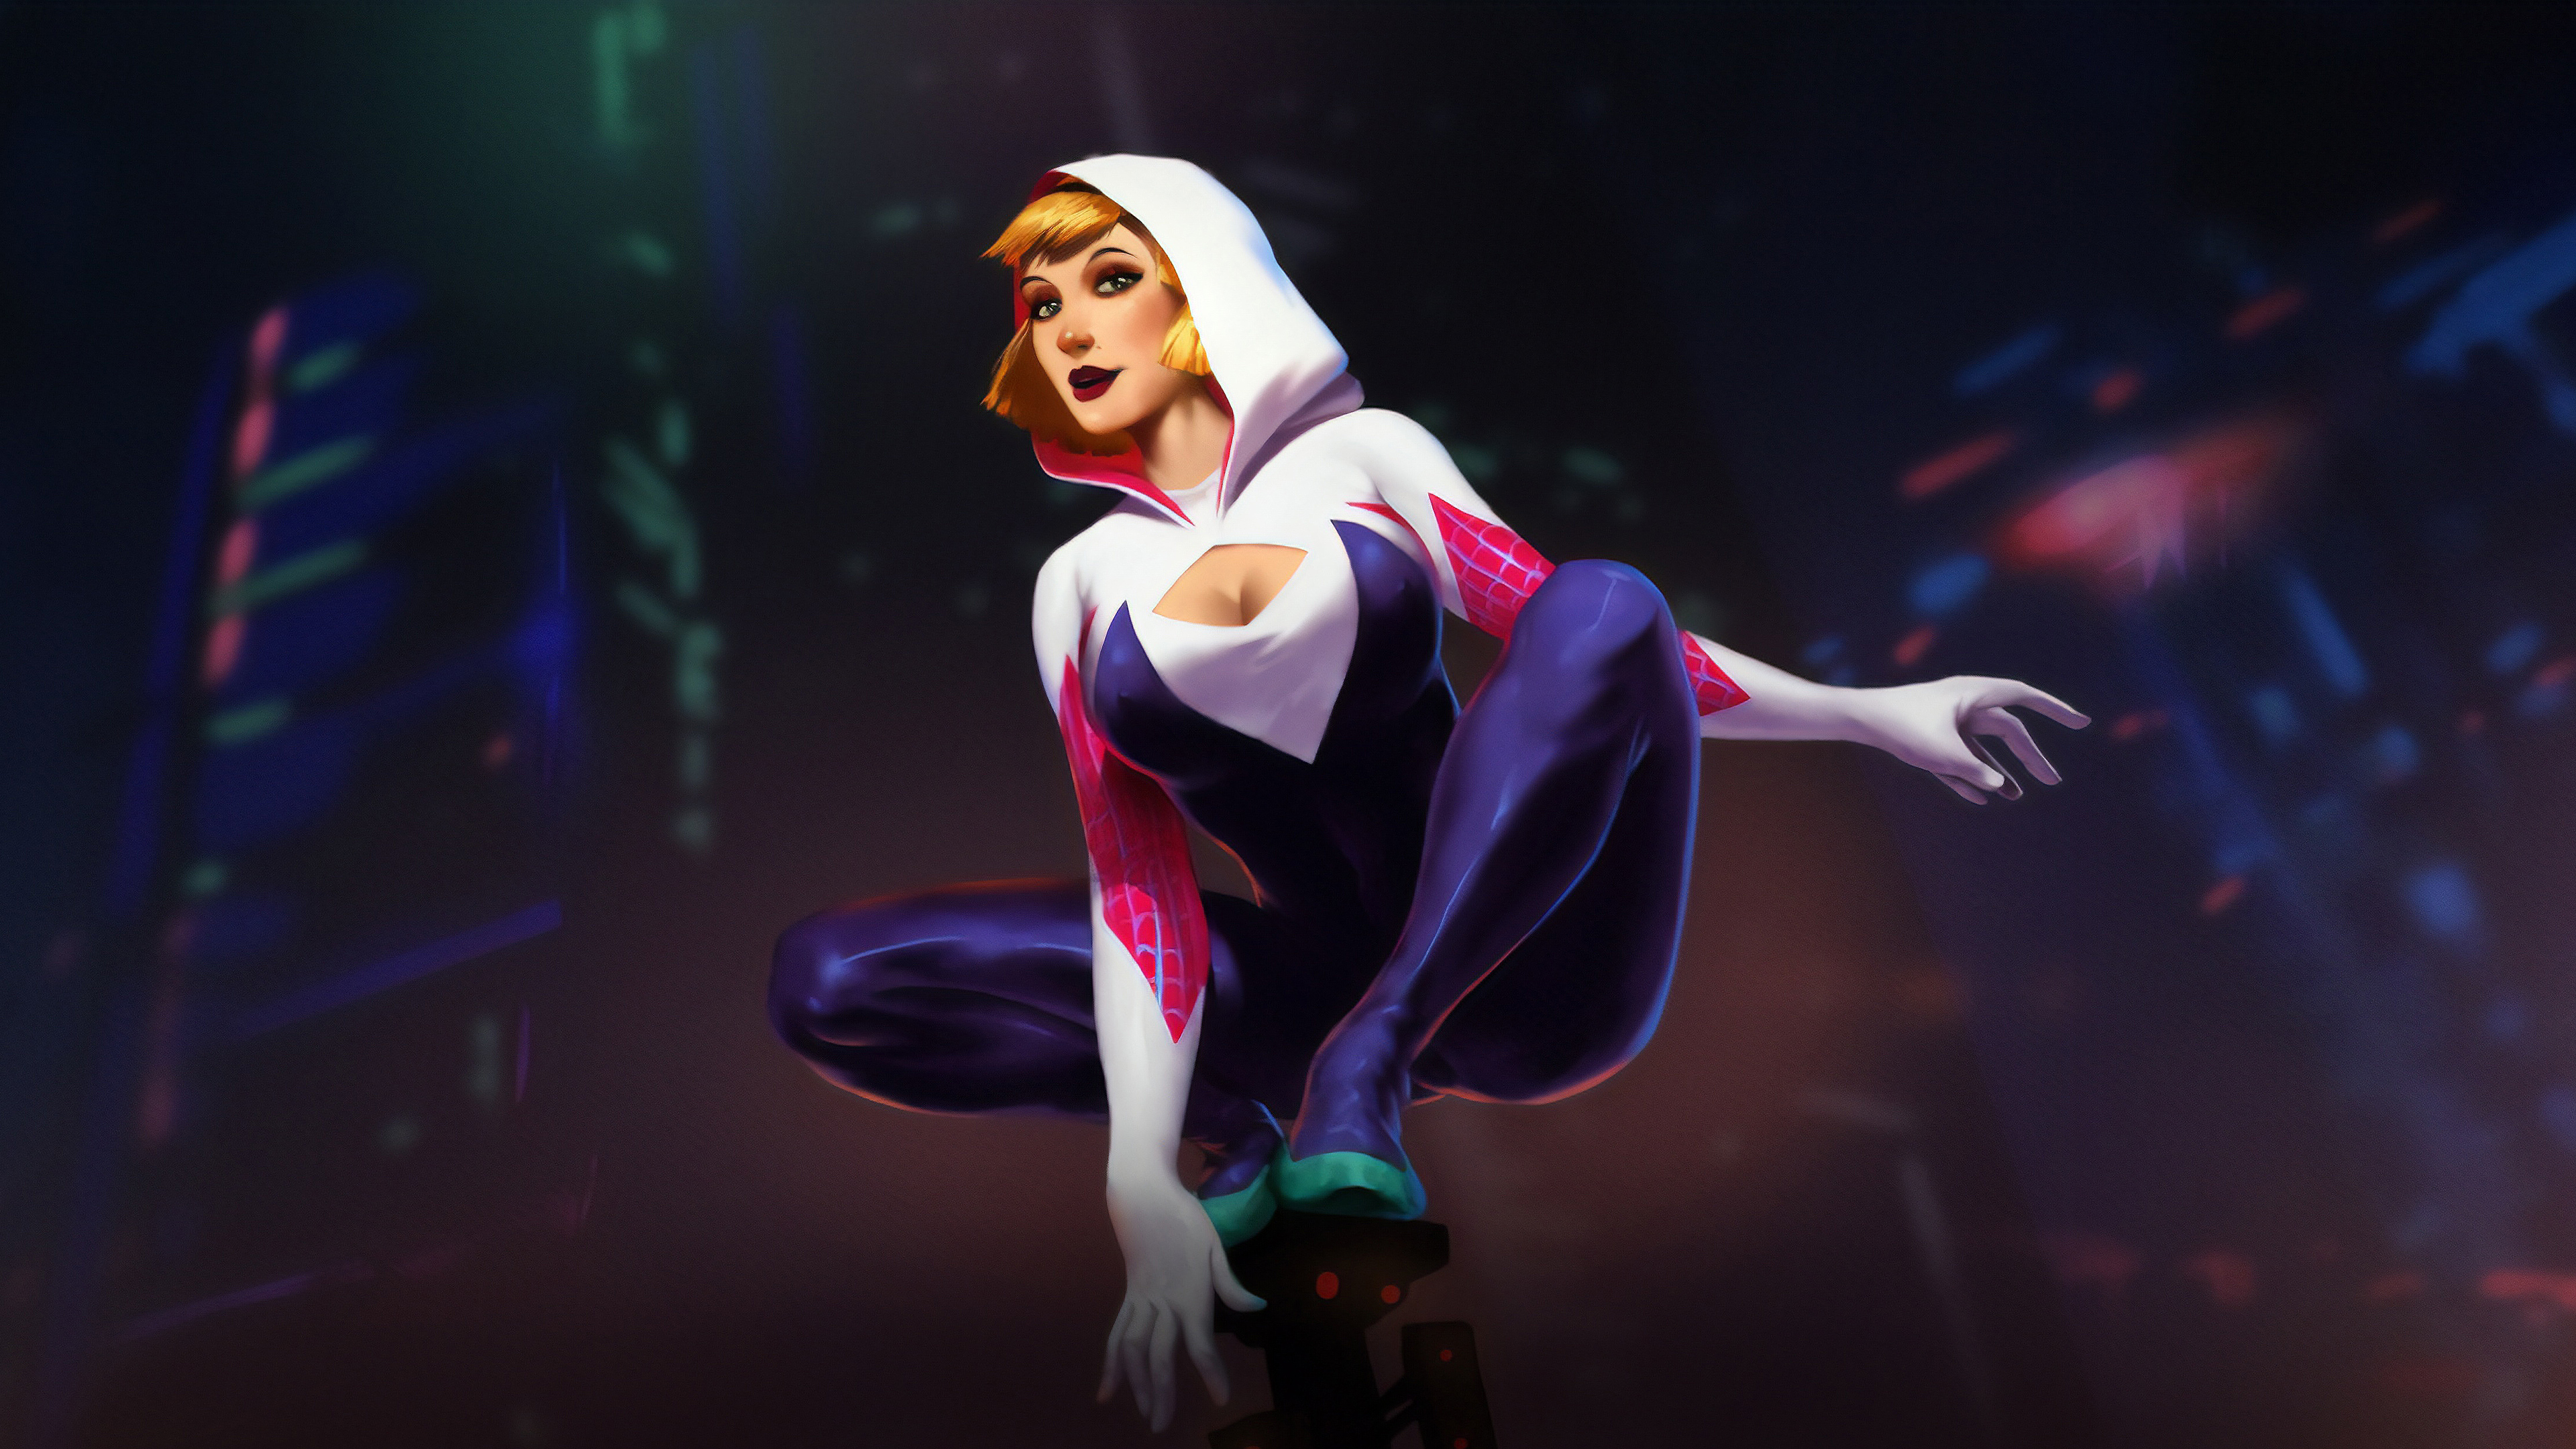 spider gwen stacy artwork 1559764155 - Spider Gwen Stacy Artwork - superheroes wallpapers, hd-wallpapers, gwen stacy wallpapers, digital art wallpapers, behance wallpapers, artwork wallpapers, 4k-wallpapers